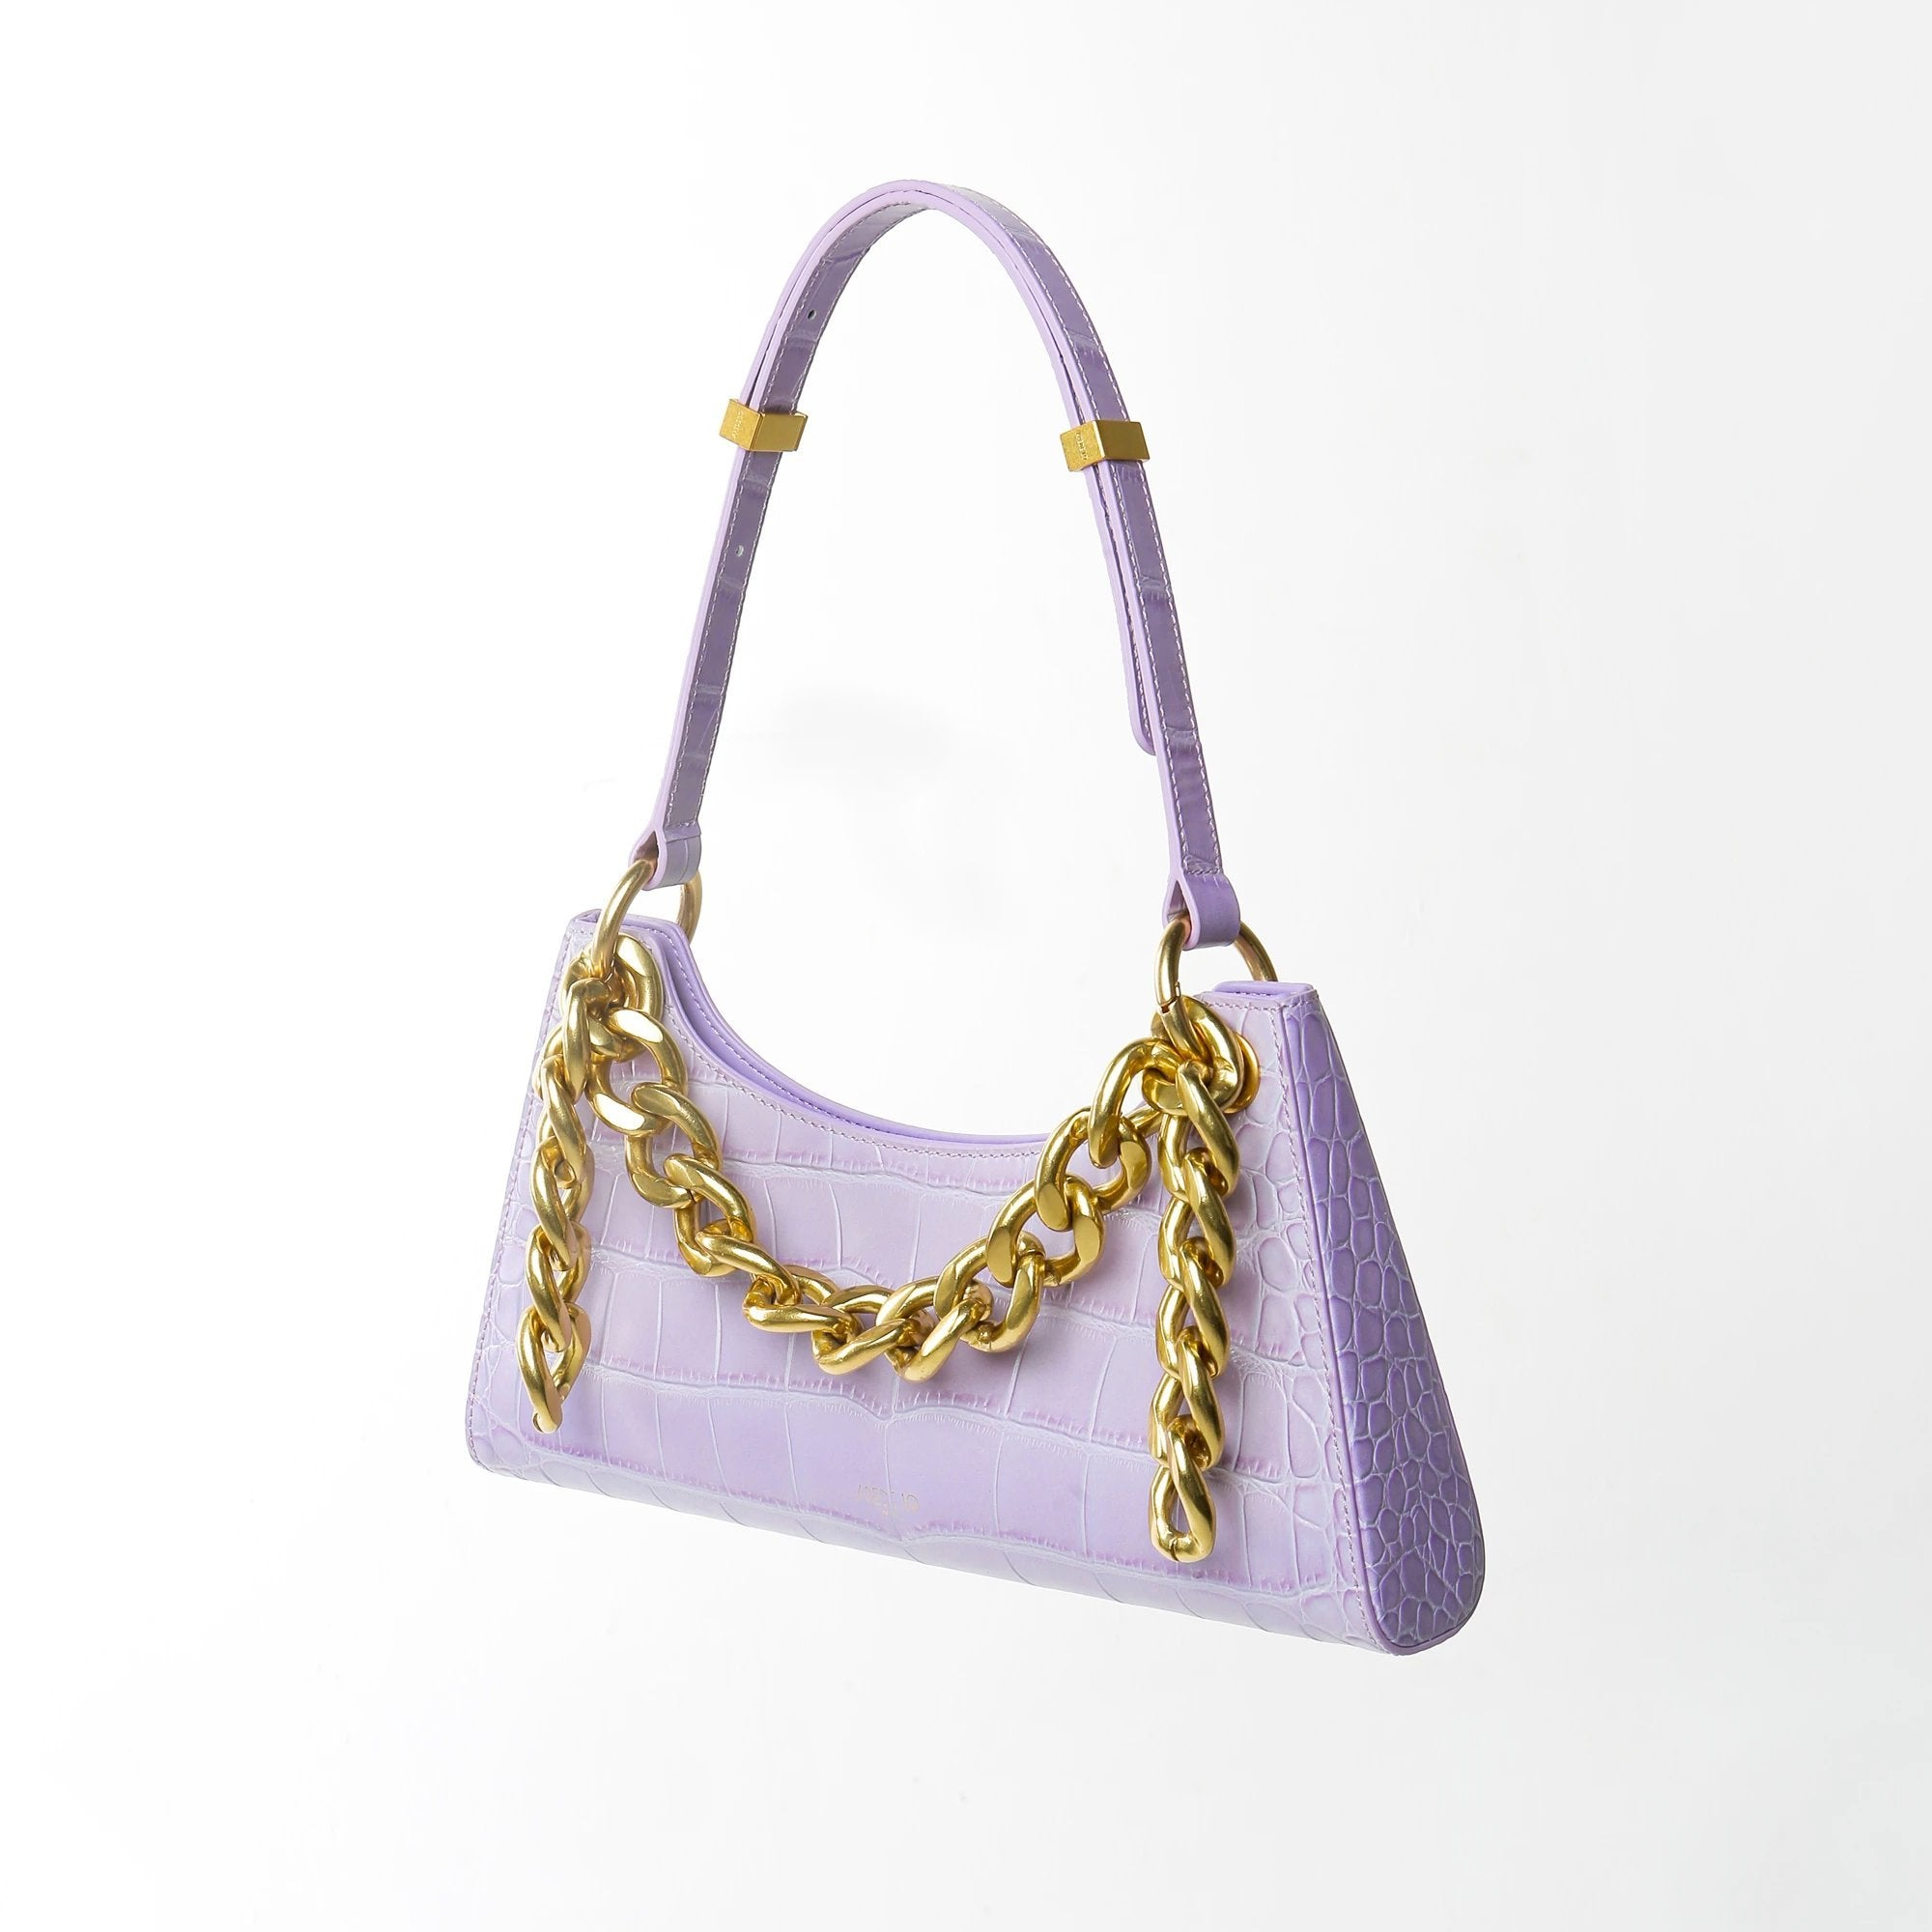 APEDE MOD Purple Croc Froggy Bag Golden Metal | MADA IN CHINA